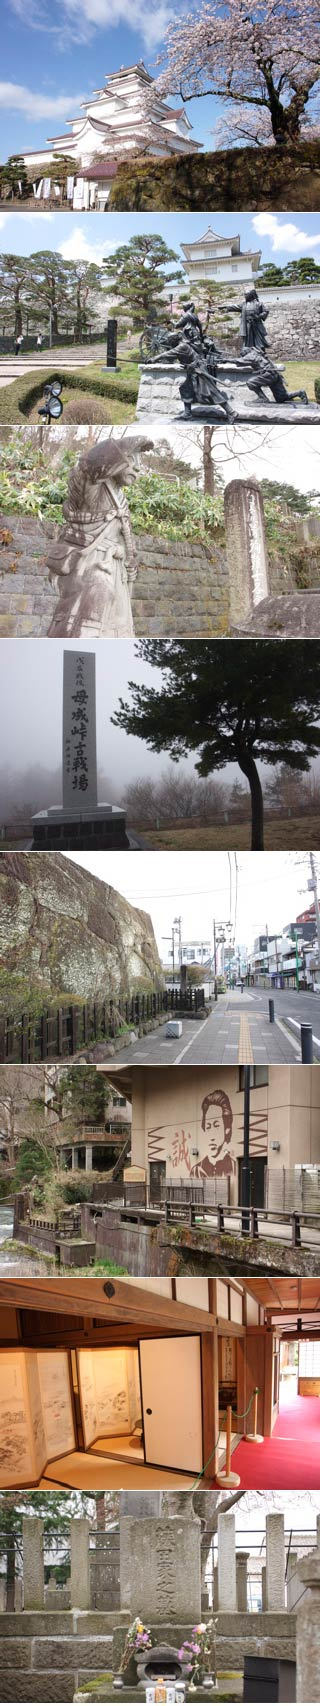 The battle of Aizu